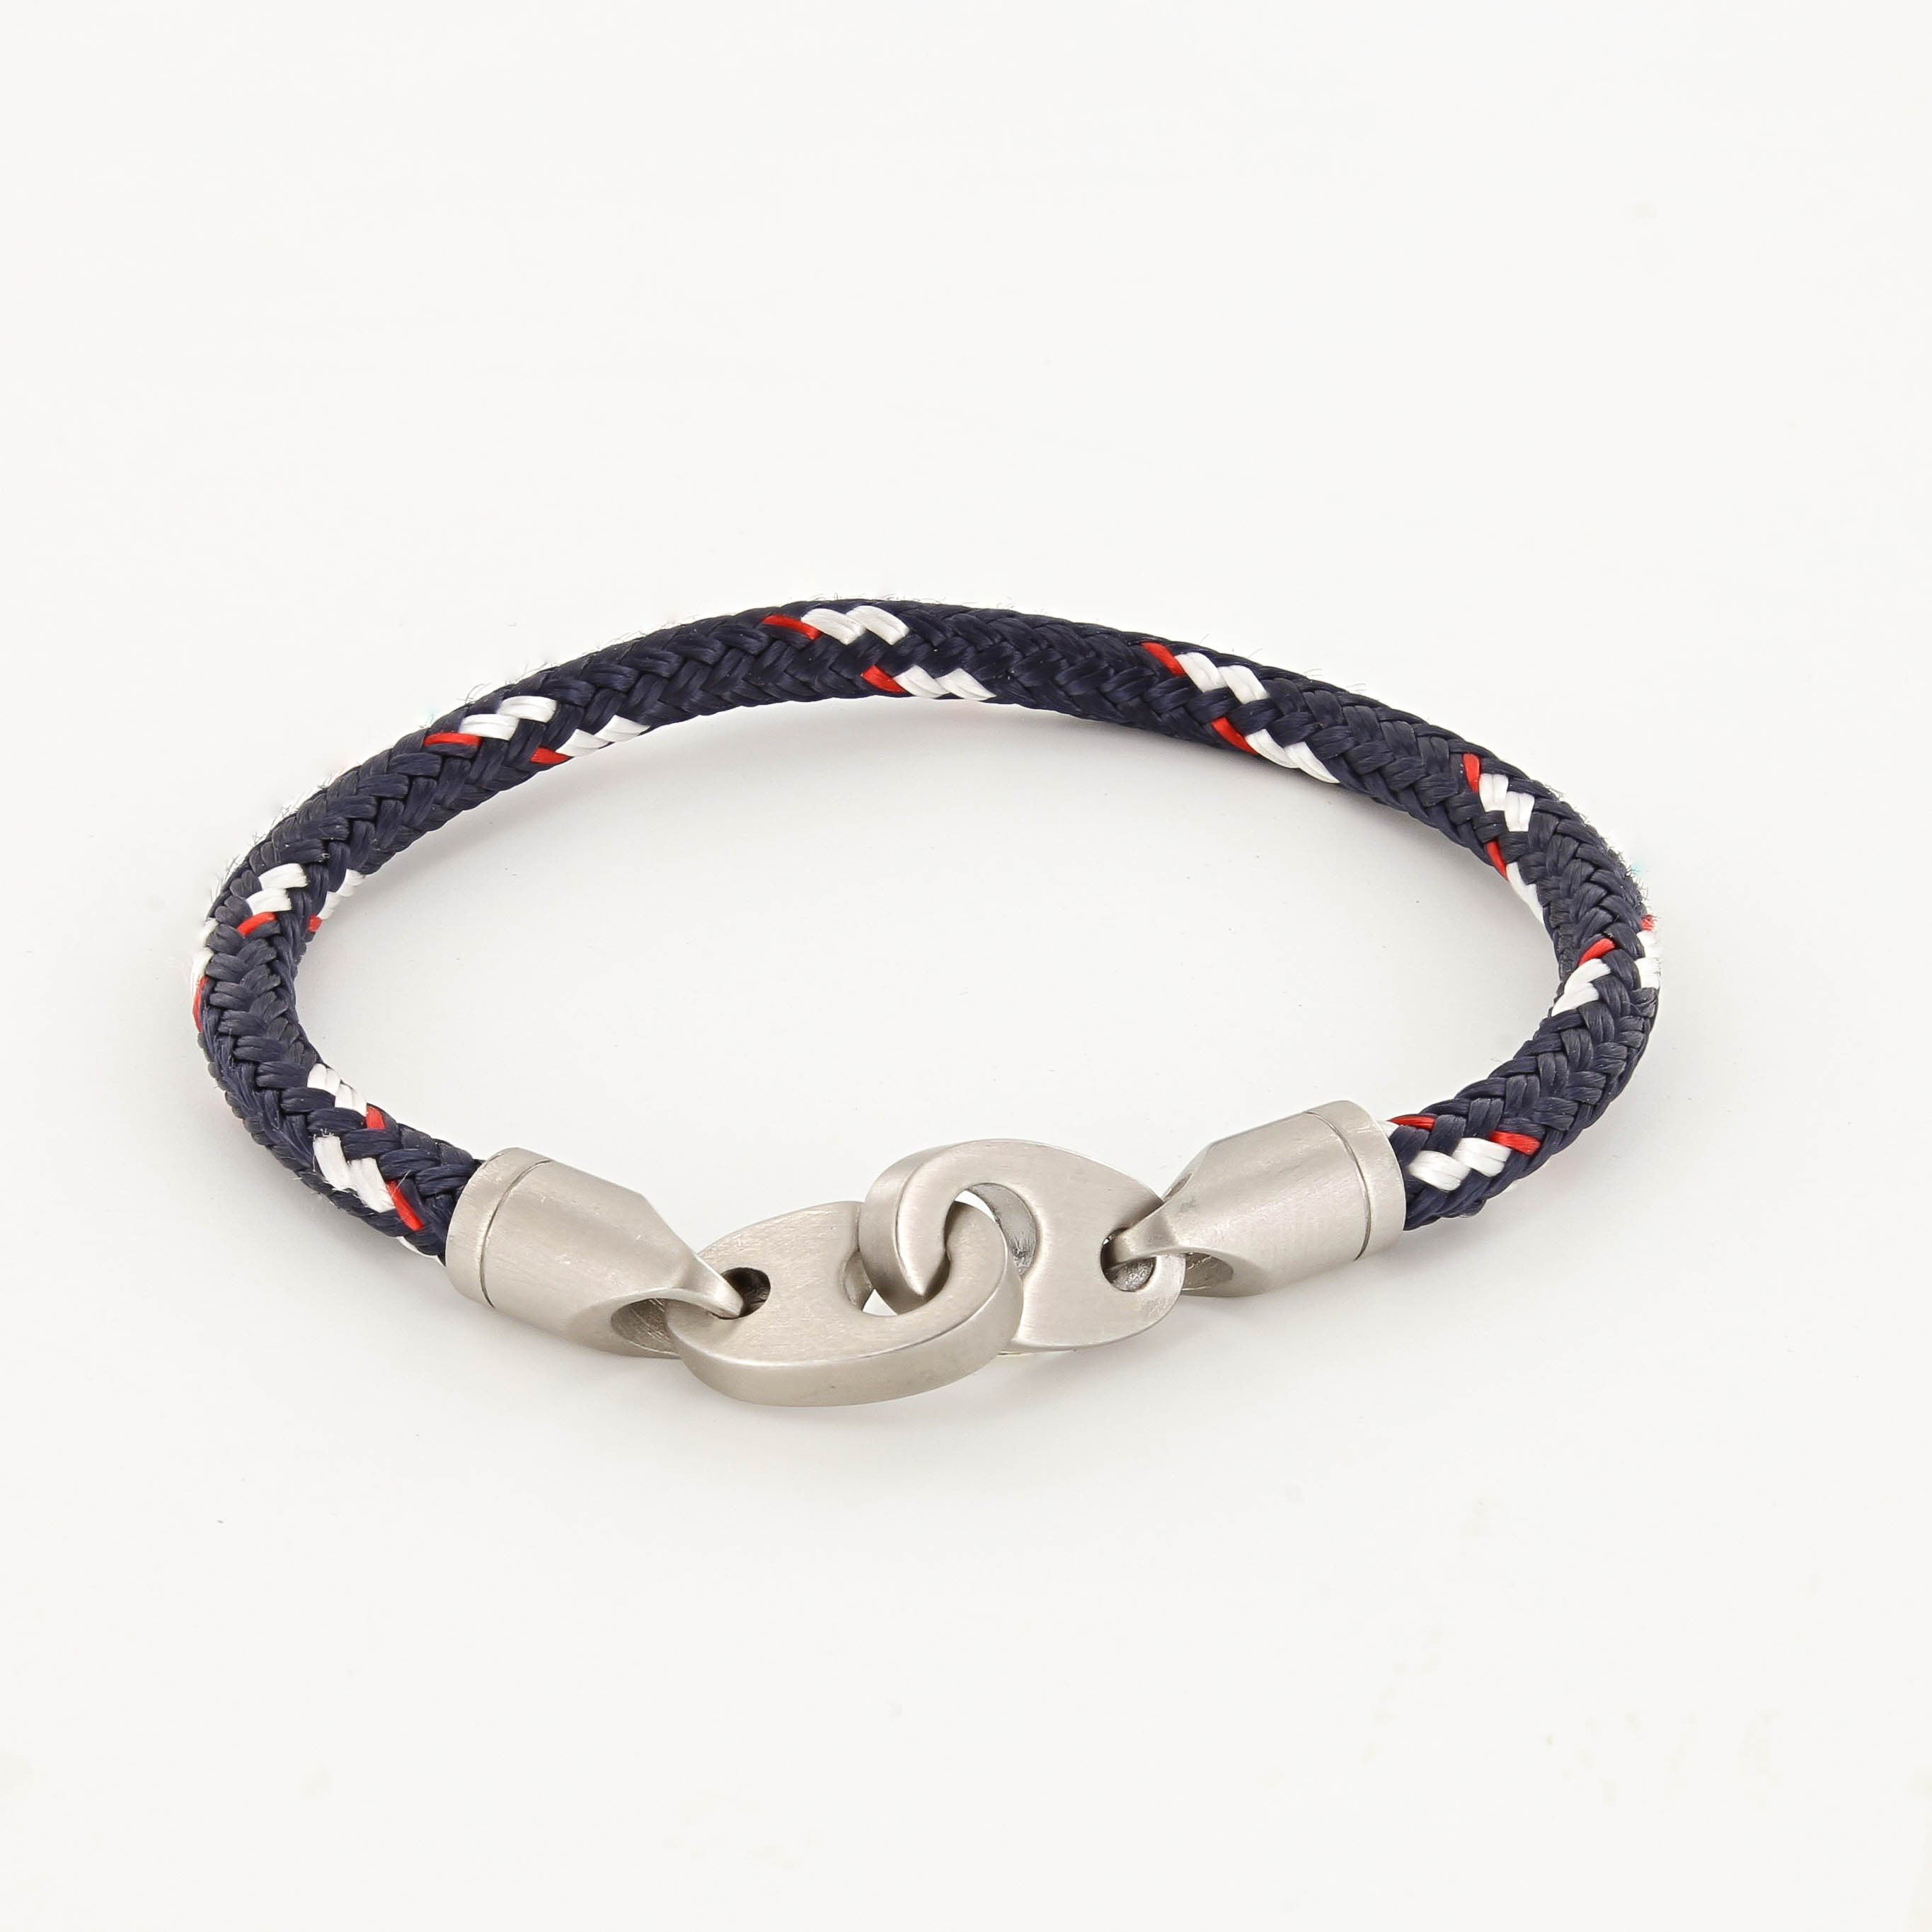 products nautical cord rope charm bracelets sea sailor mens bracelet